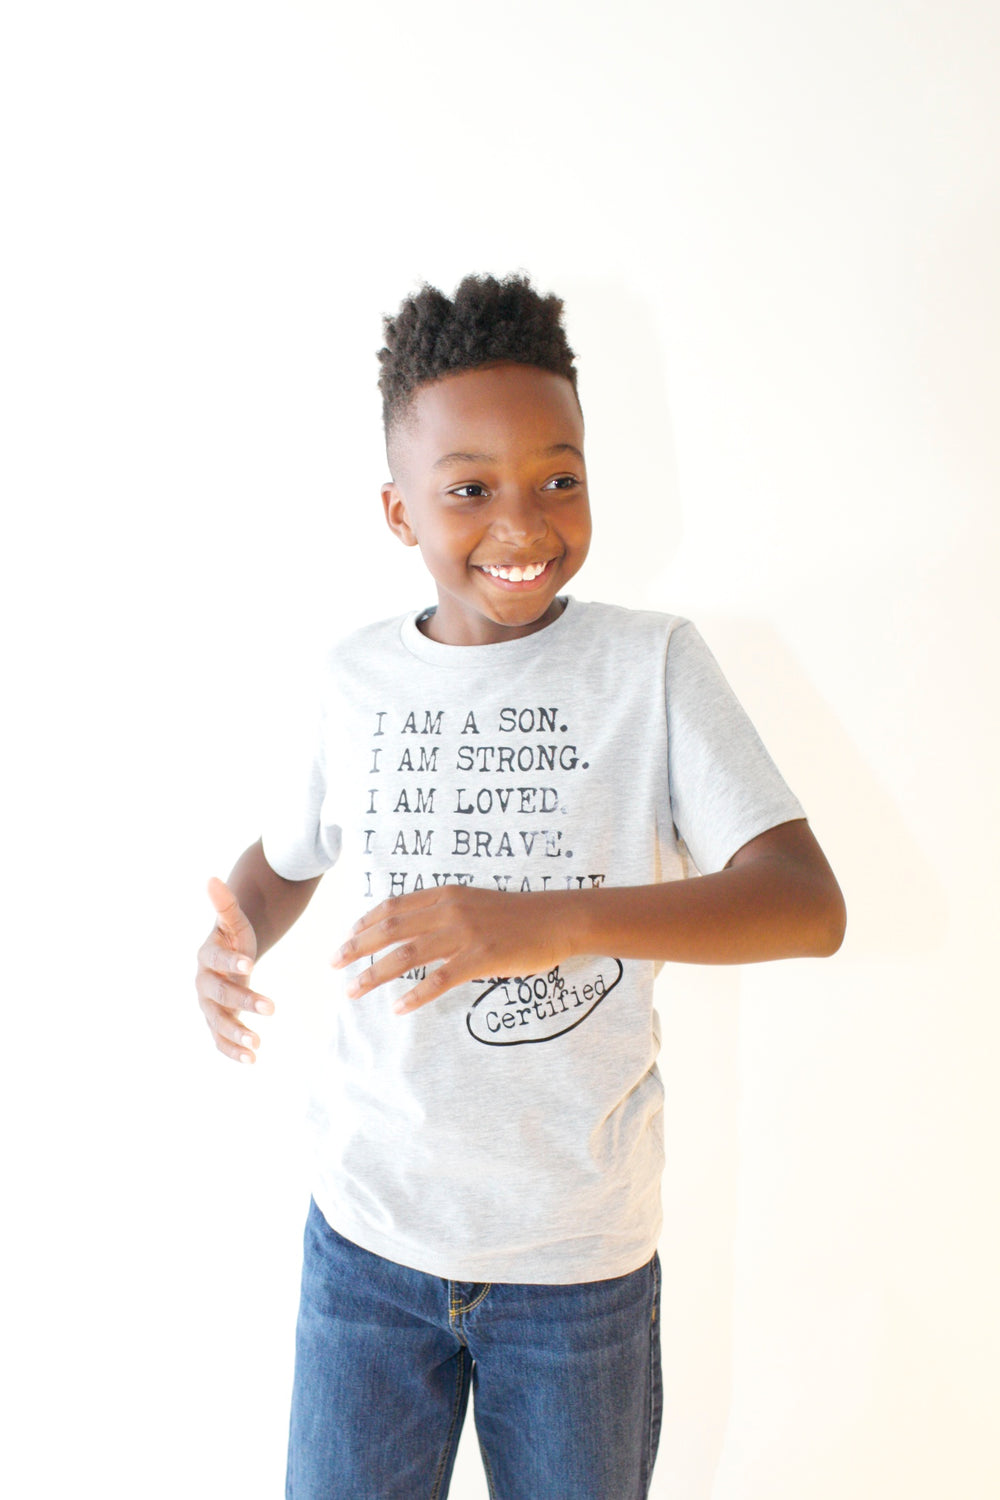 Boy wearing gray graphic tee for boys with saying, I AM A SON. I AM STRONG. I AM LOVED. I AM STRONG. I AM BRAVE. I AM VALUED. I AM KING. I AM HIM -­‐ 100% CERTIFIED. Boys clothing for him because it is never too early or too late for him to know his value and worth.